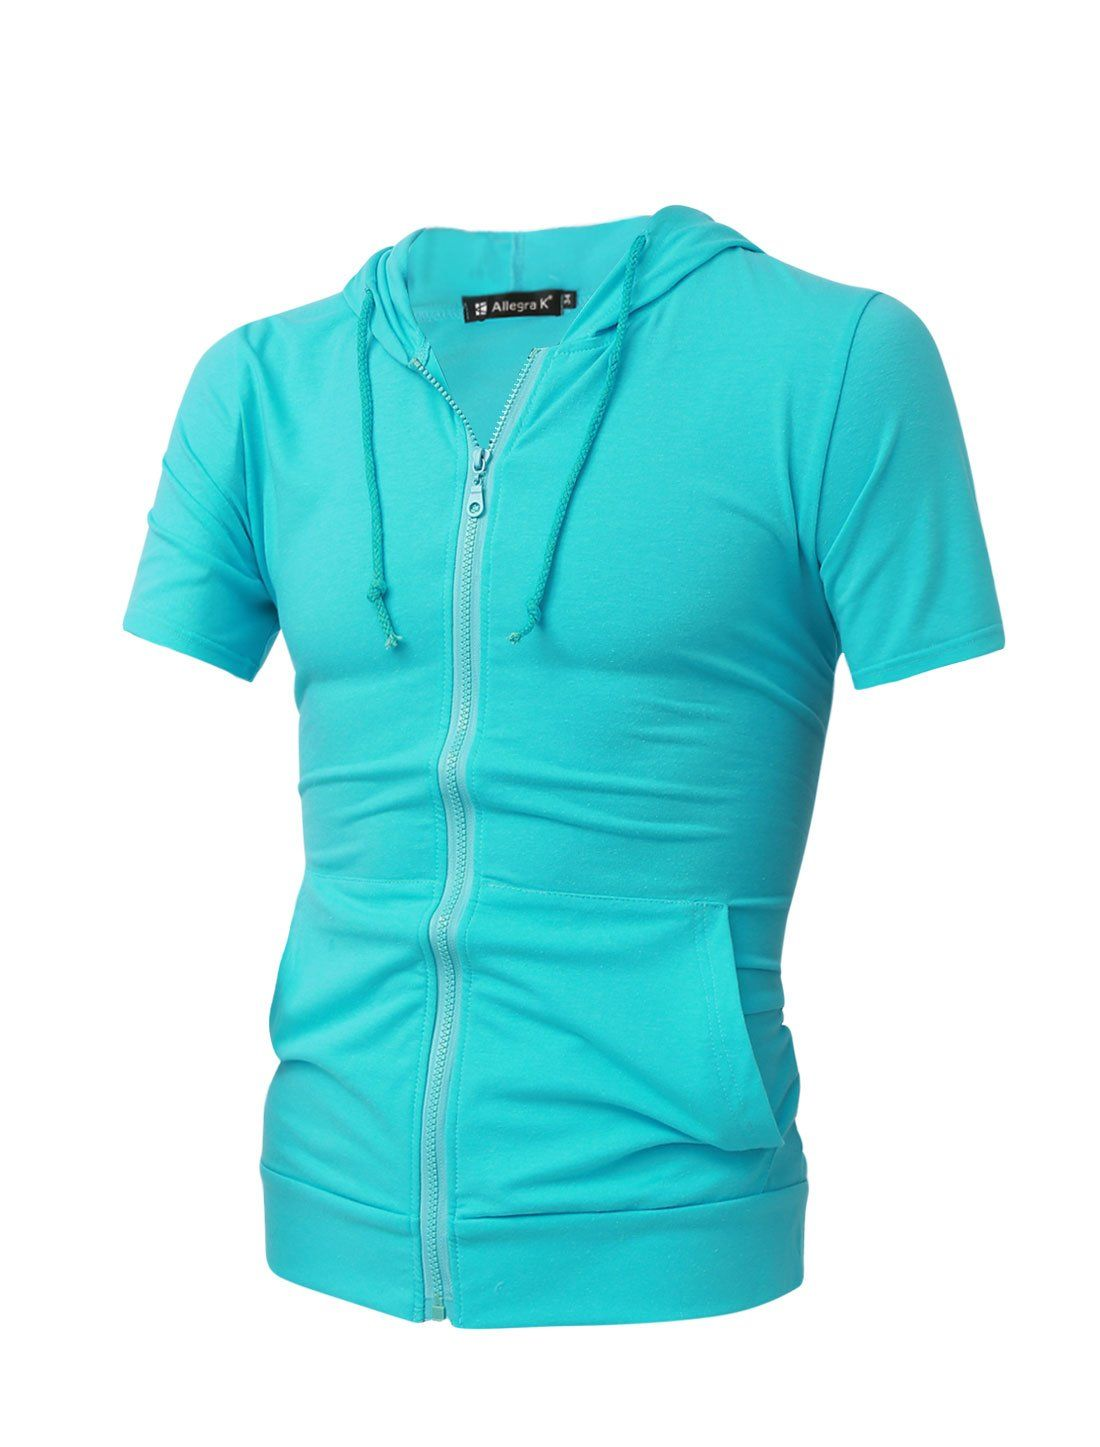 Allegra K Men Short Sleeve Drawstring Hoodie Zipper Front Hoodies Light Teal L